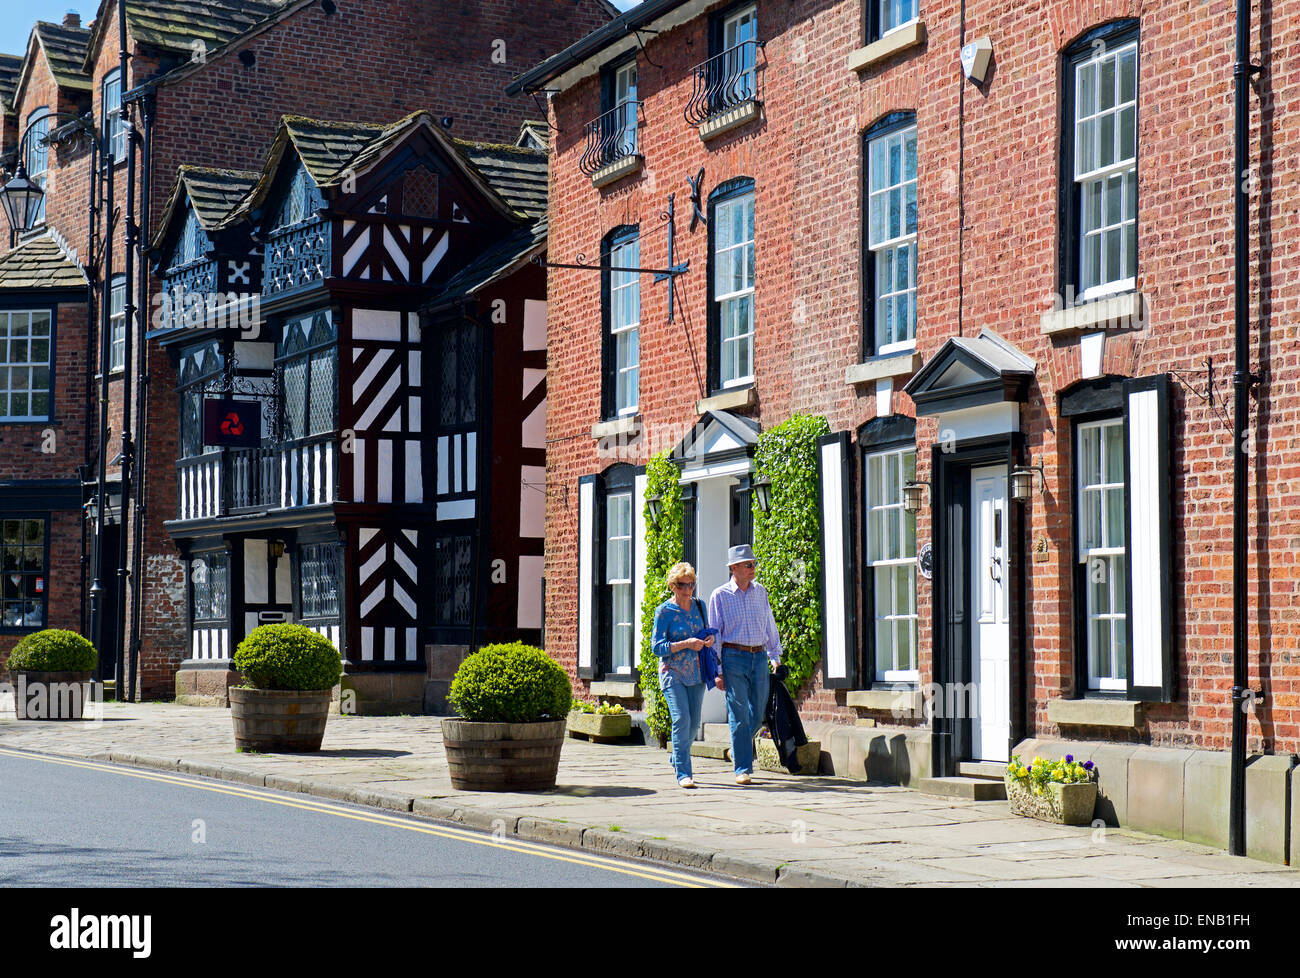 Middle aged couple walking down street in Prestbury, Cheshire, England UK - Stock Image